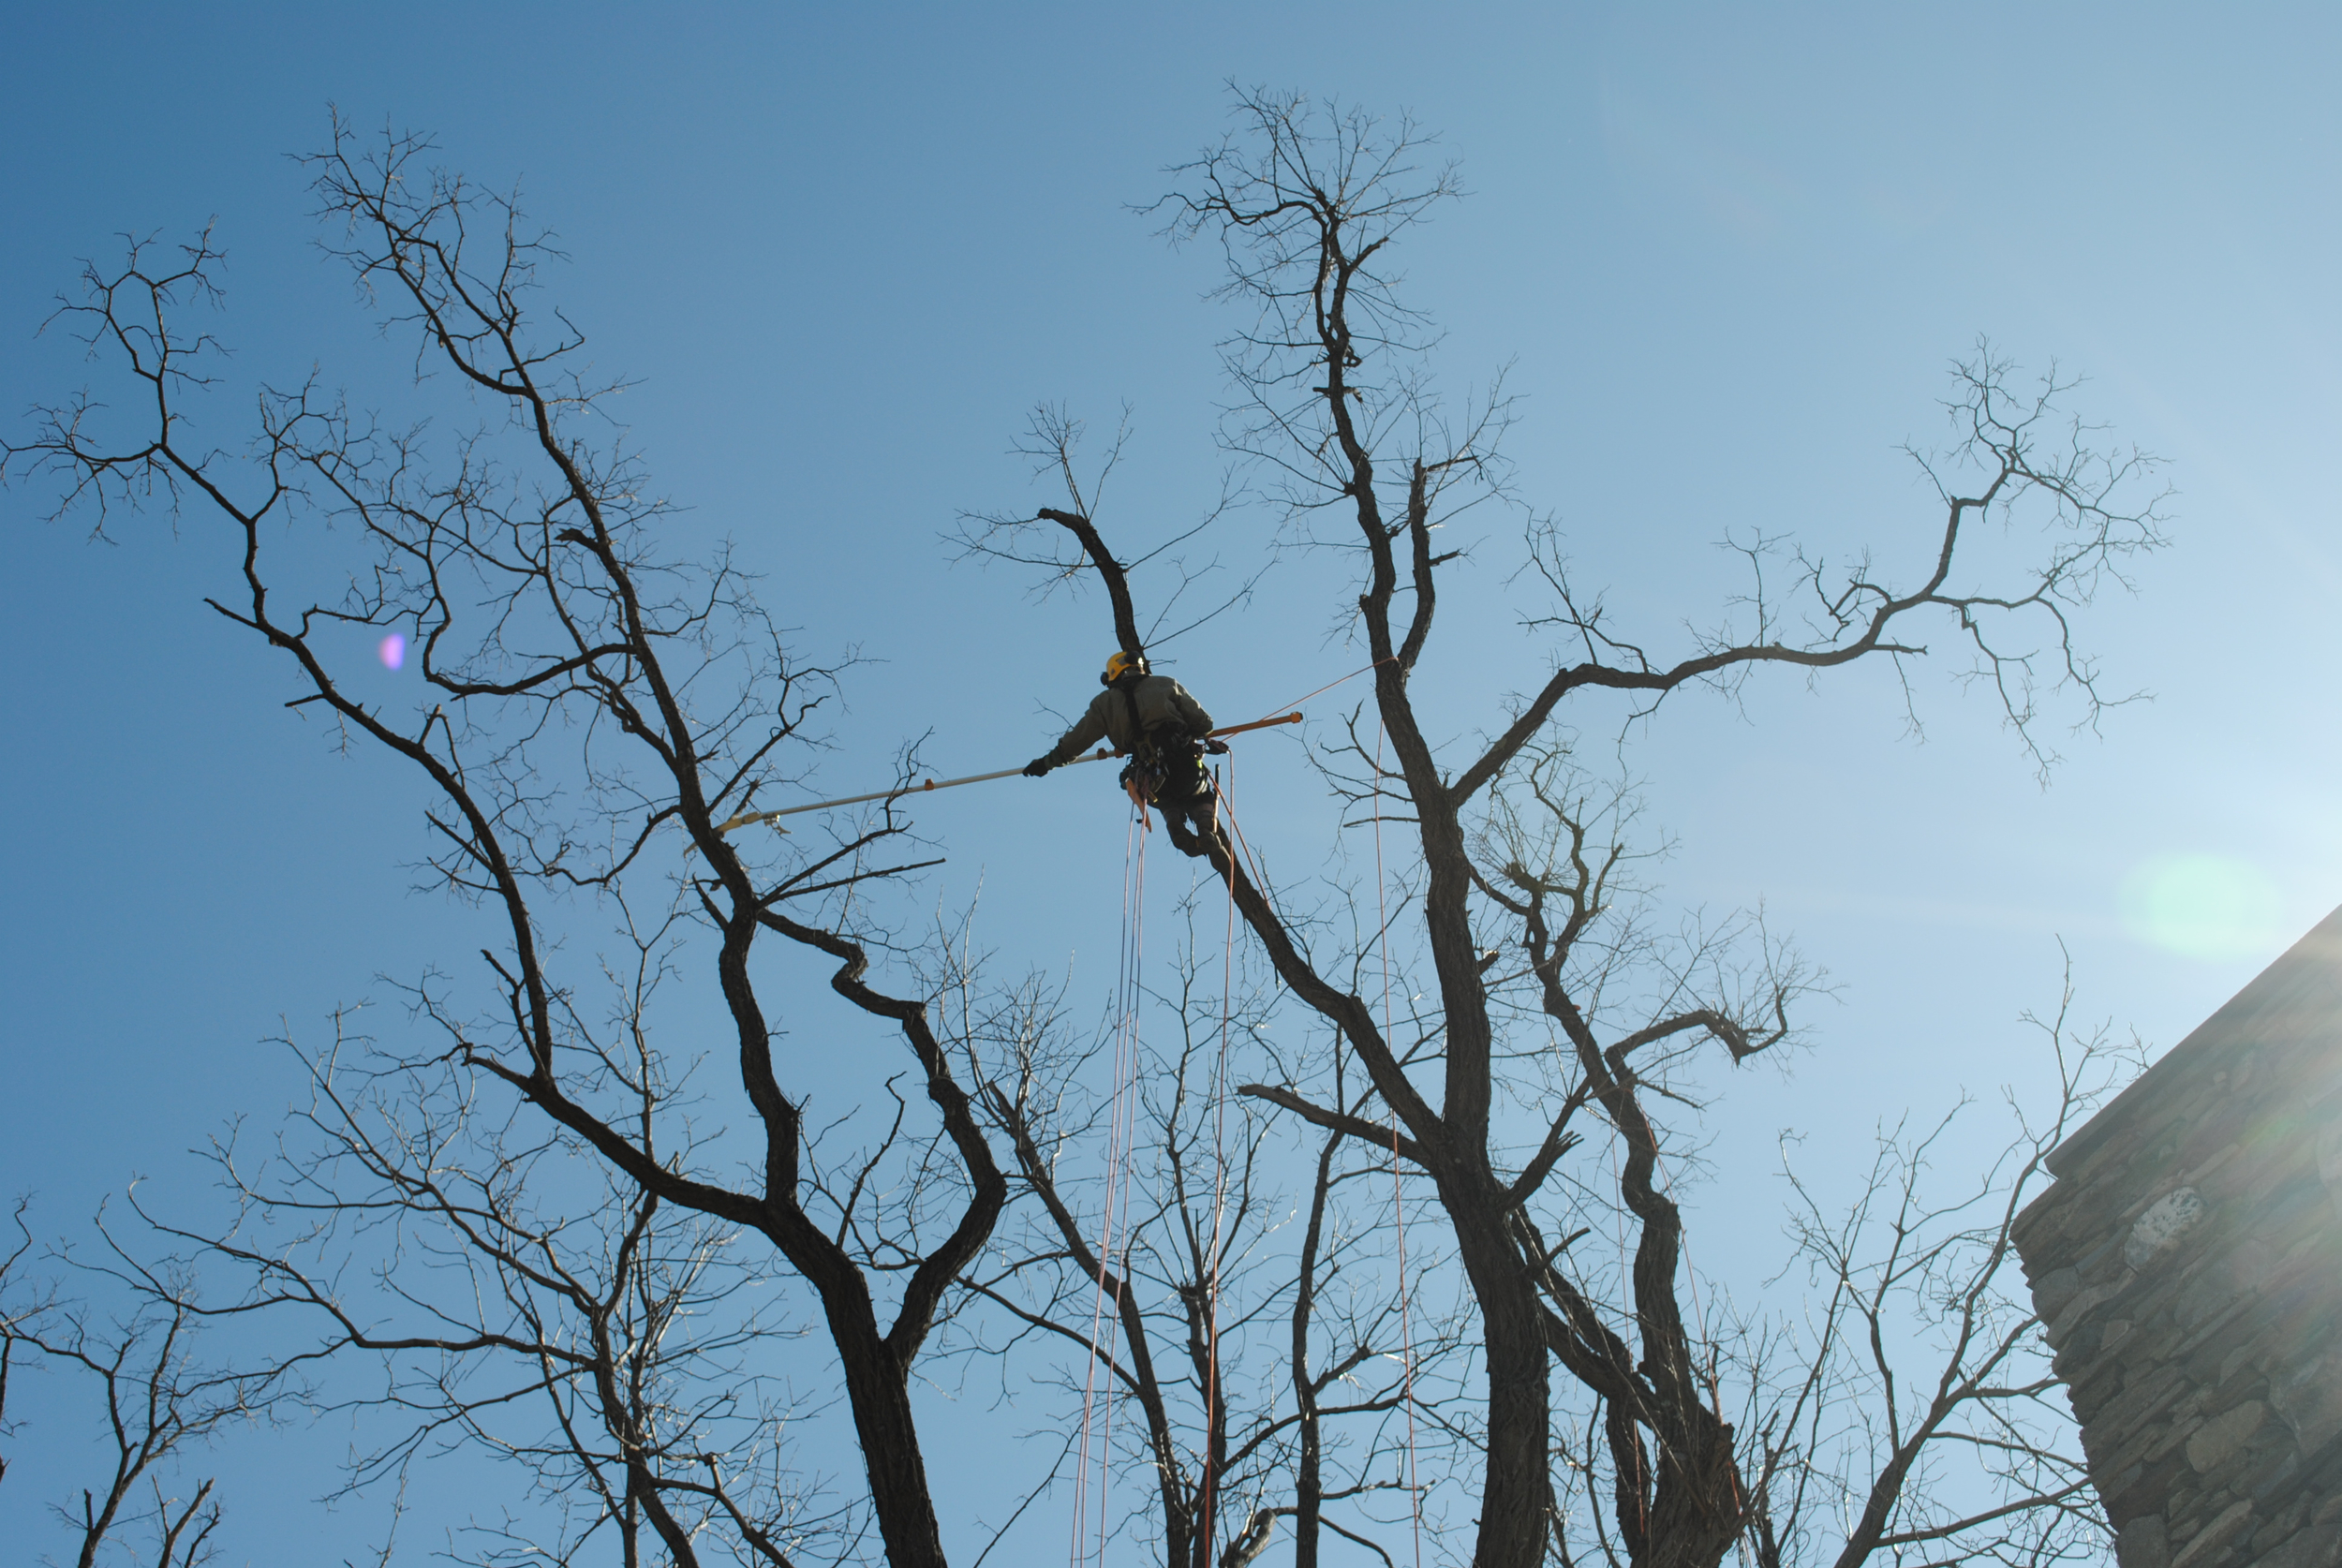 Certified Arborist Peter W. Madsen prunes dead branches from a locust tree while climbing on rope.